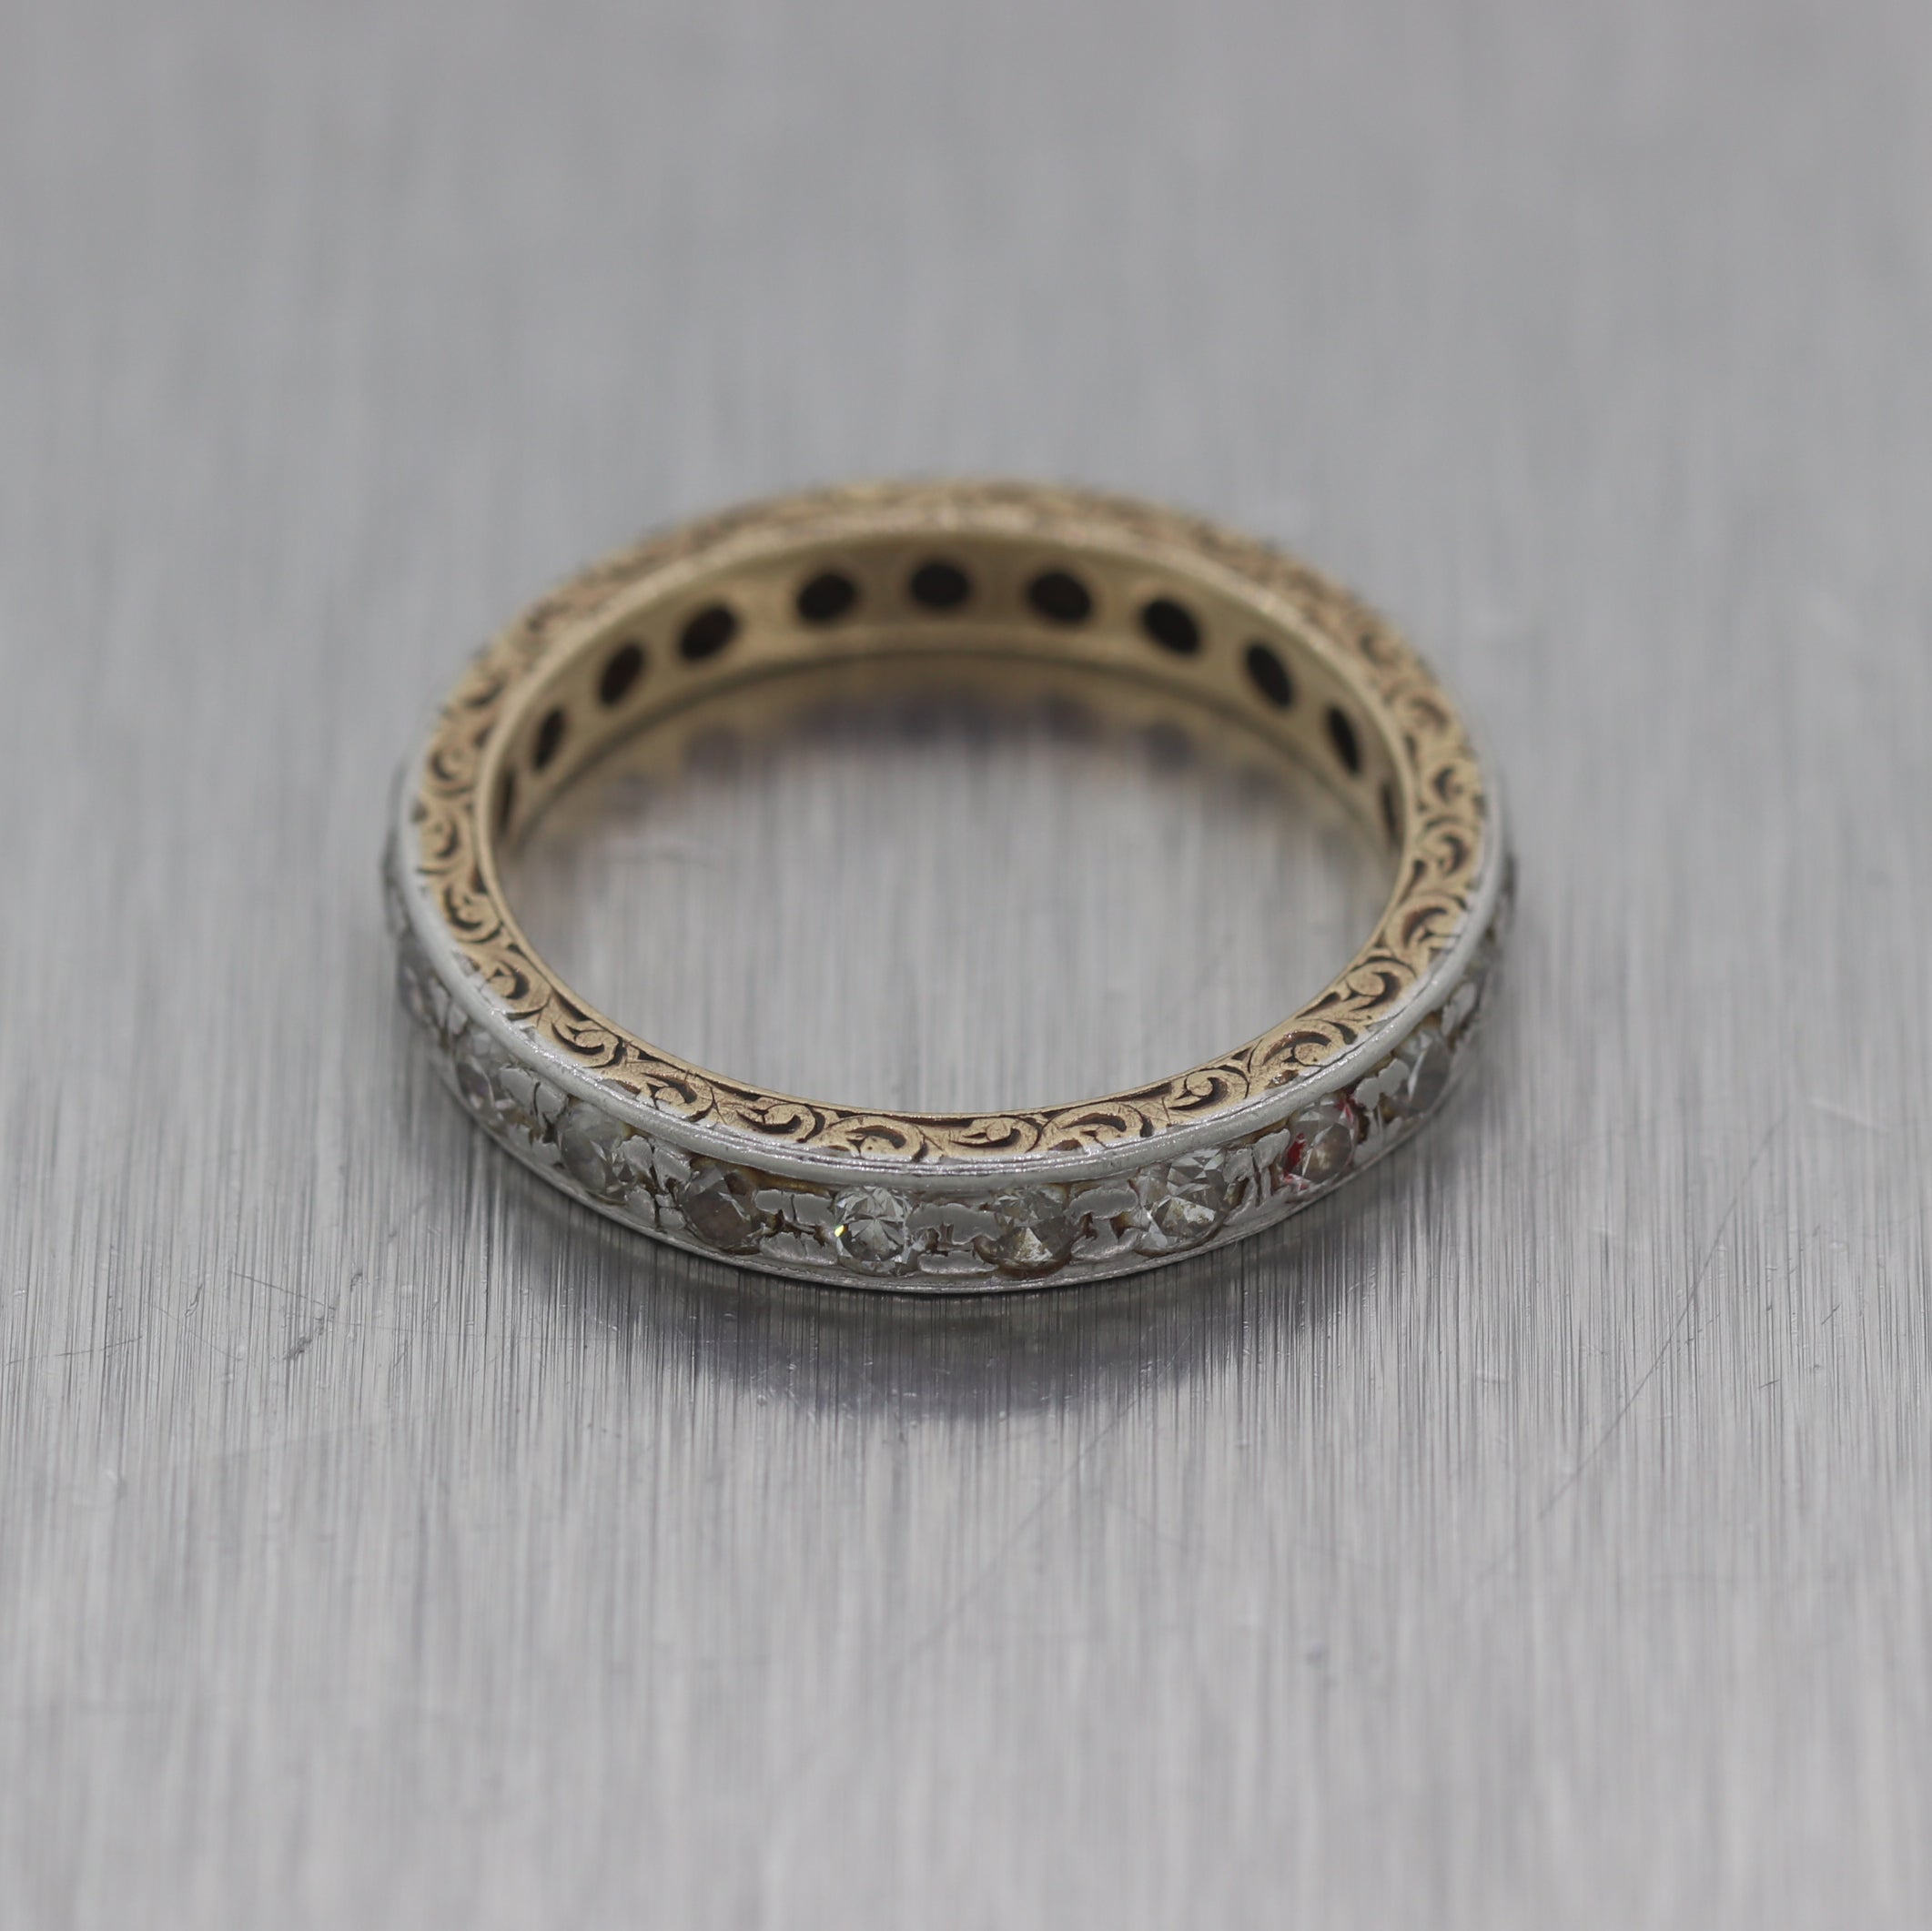 1910s Antique Art Deco Platinum & Gold 0.50ctw Diamond Filigree Ring